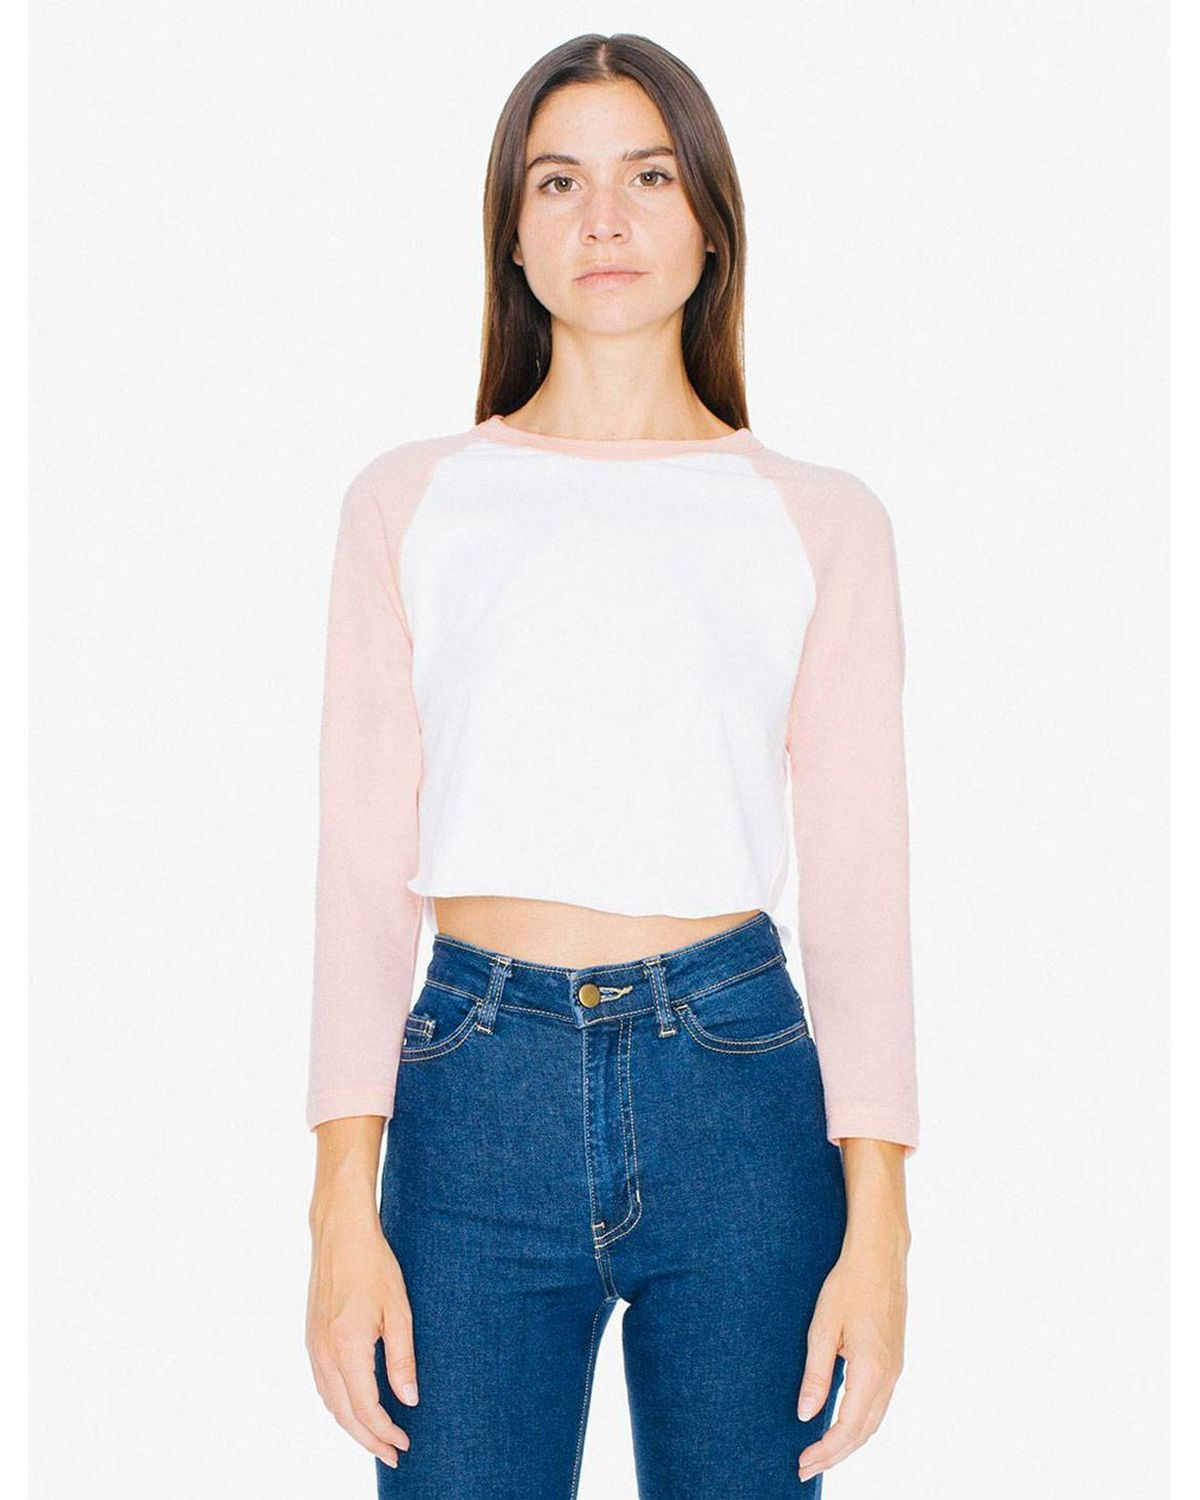 American Apparel ABB354W Women's Poly Cotton Cropped T-Shirt